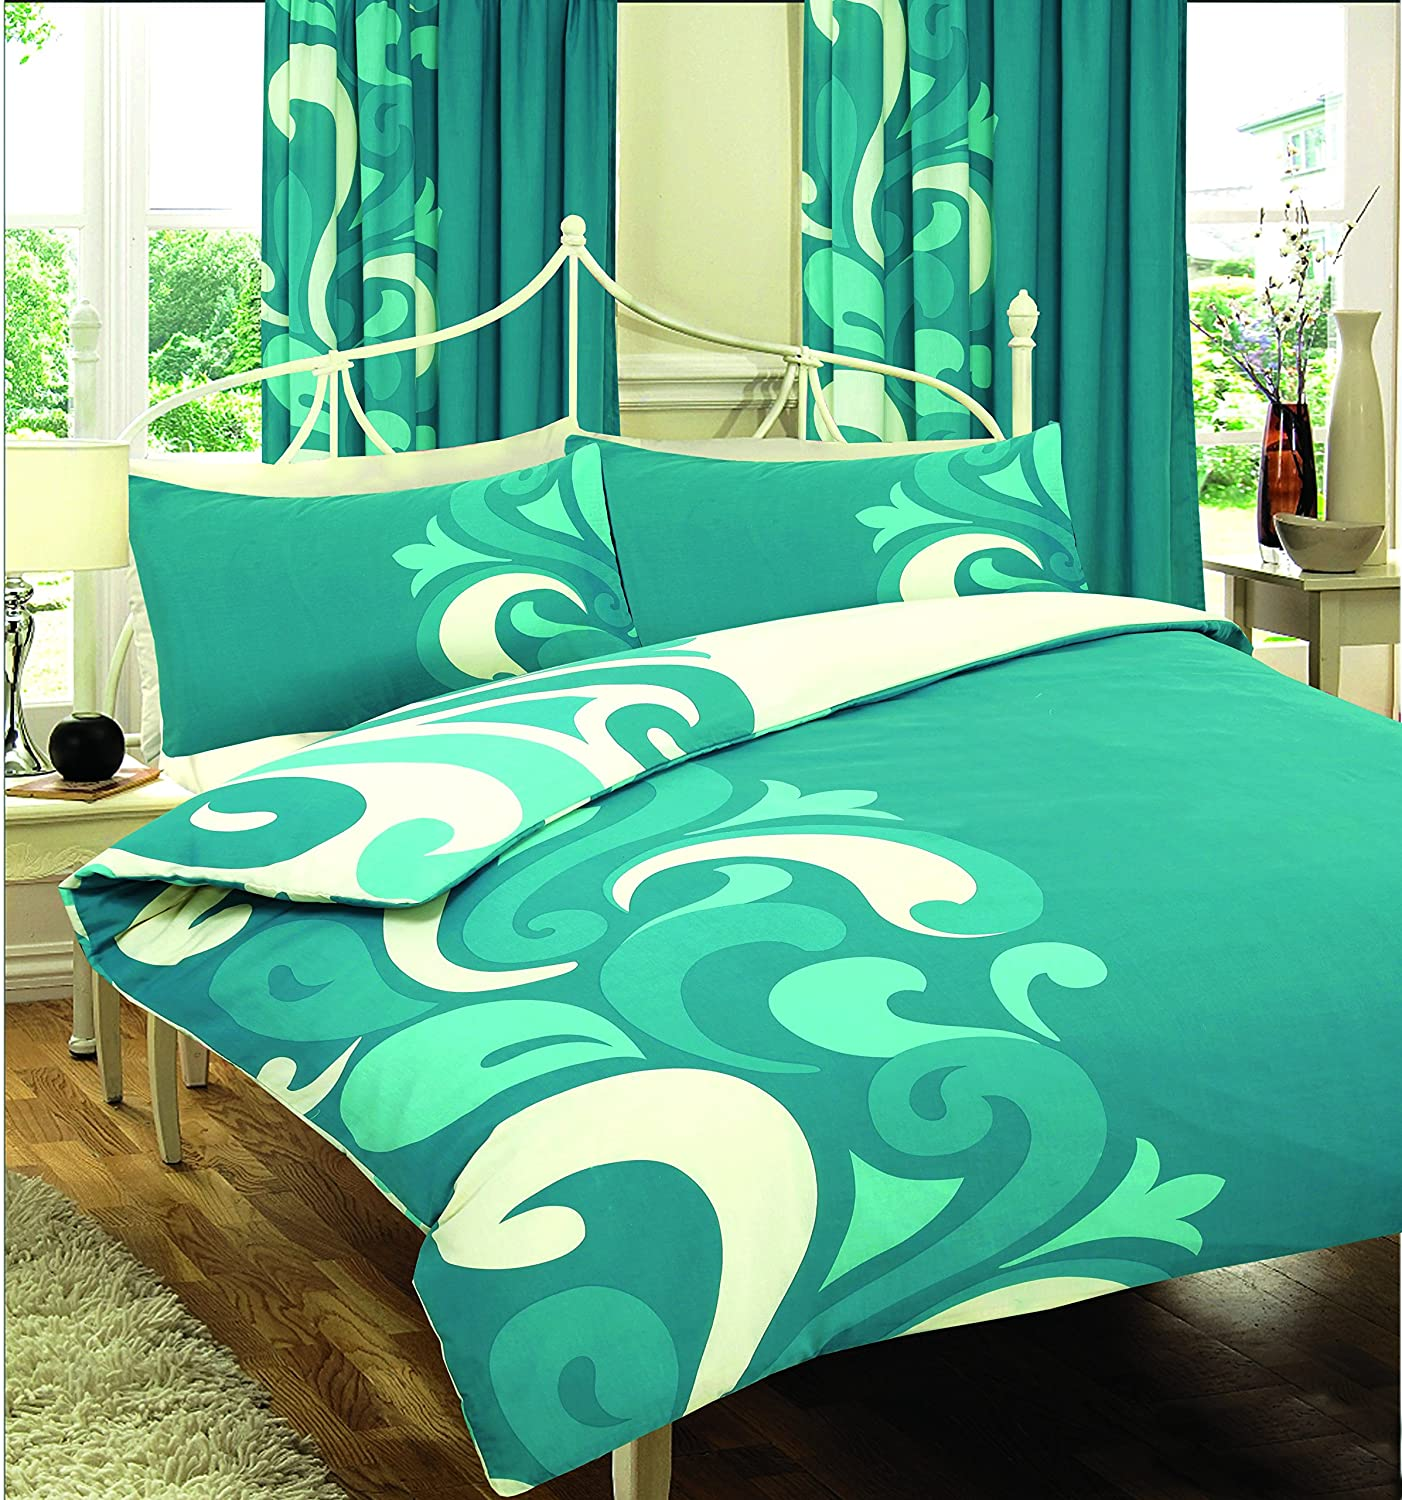 Grandeur Printed Duvet Set Or With Fitted Sheet Or Full Set Or Curtains